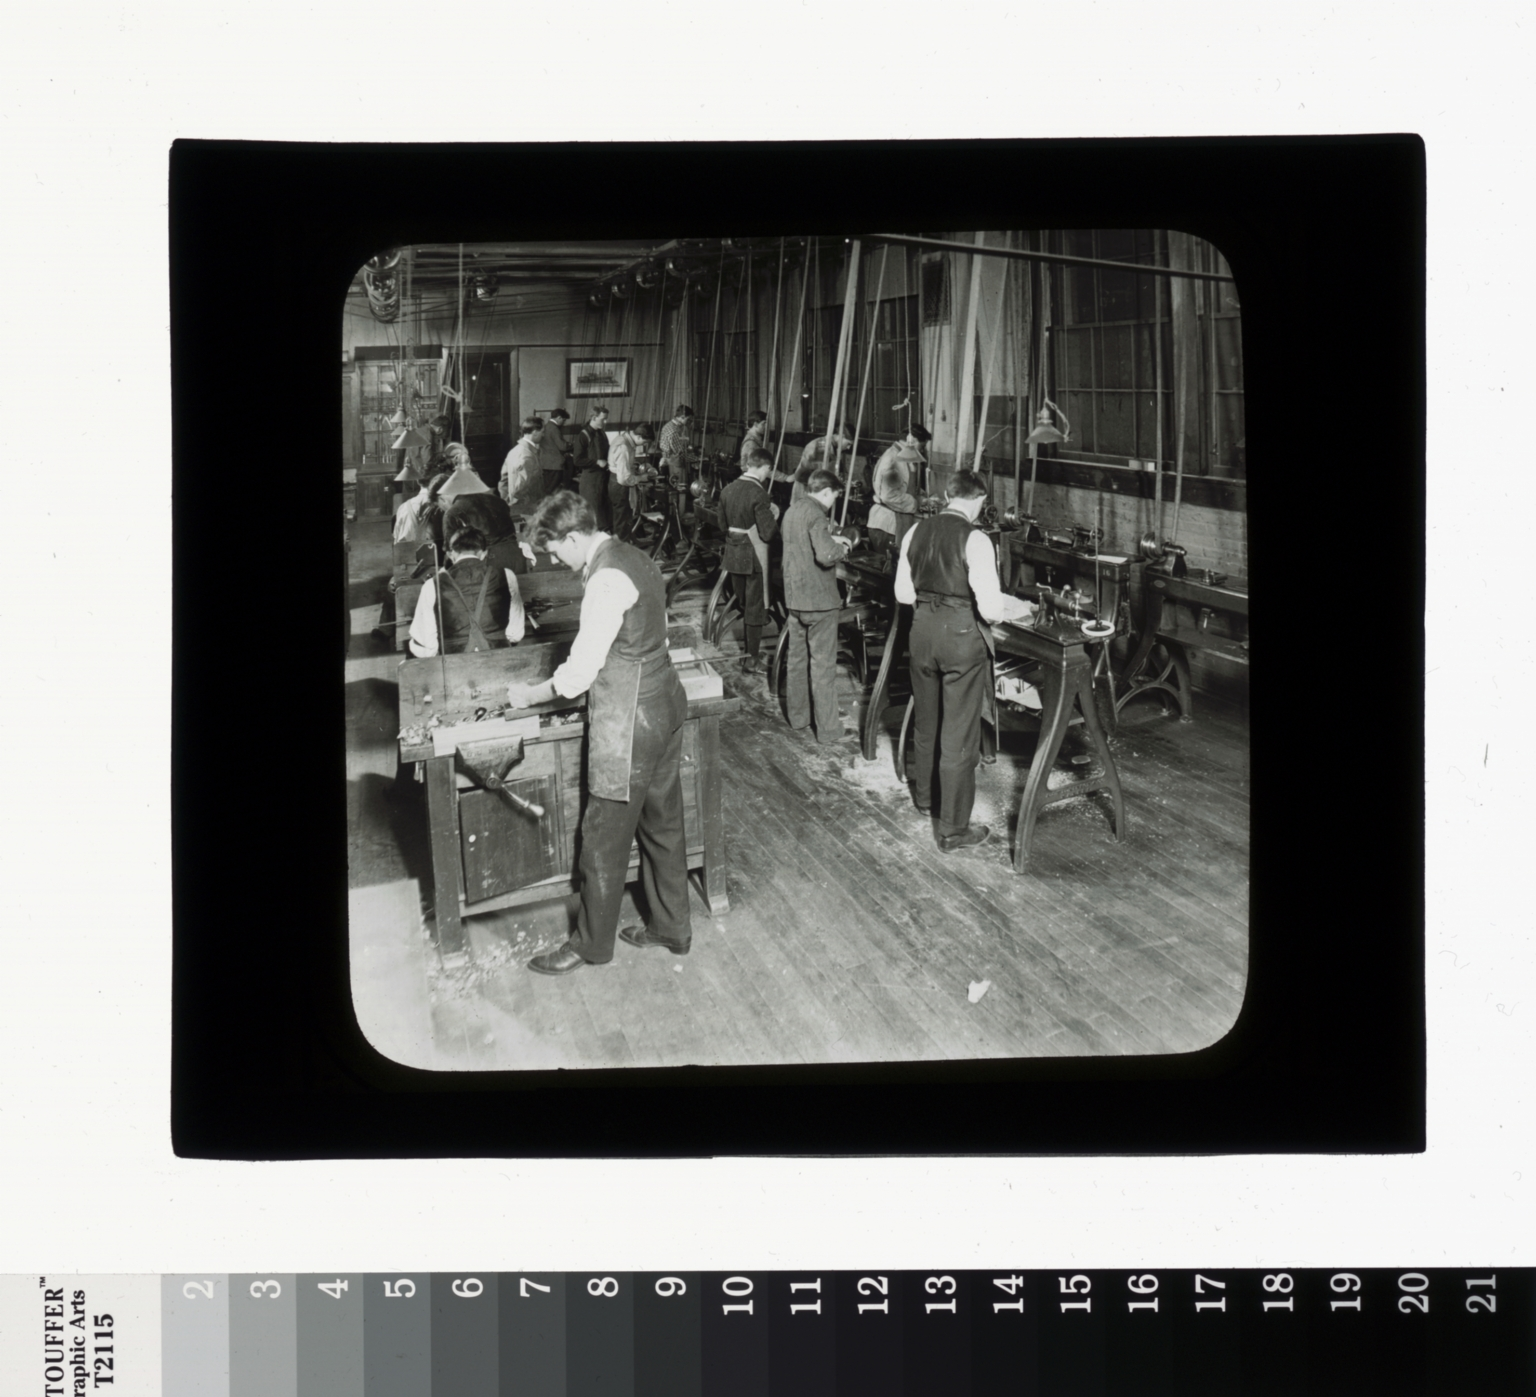 Machine shop, Department of Industrial Arts, Rochester Athenaeum and Mechanics Institute